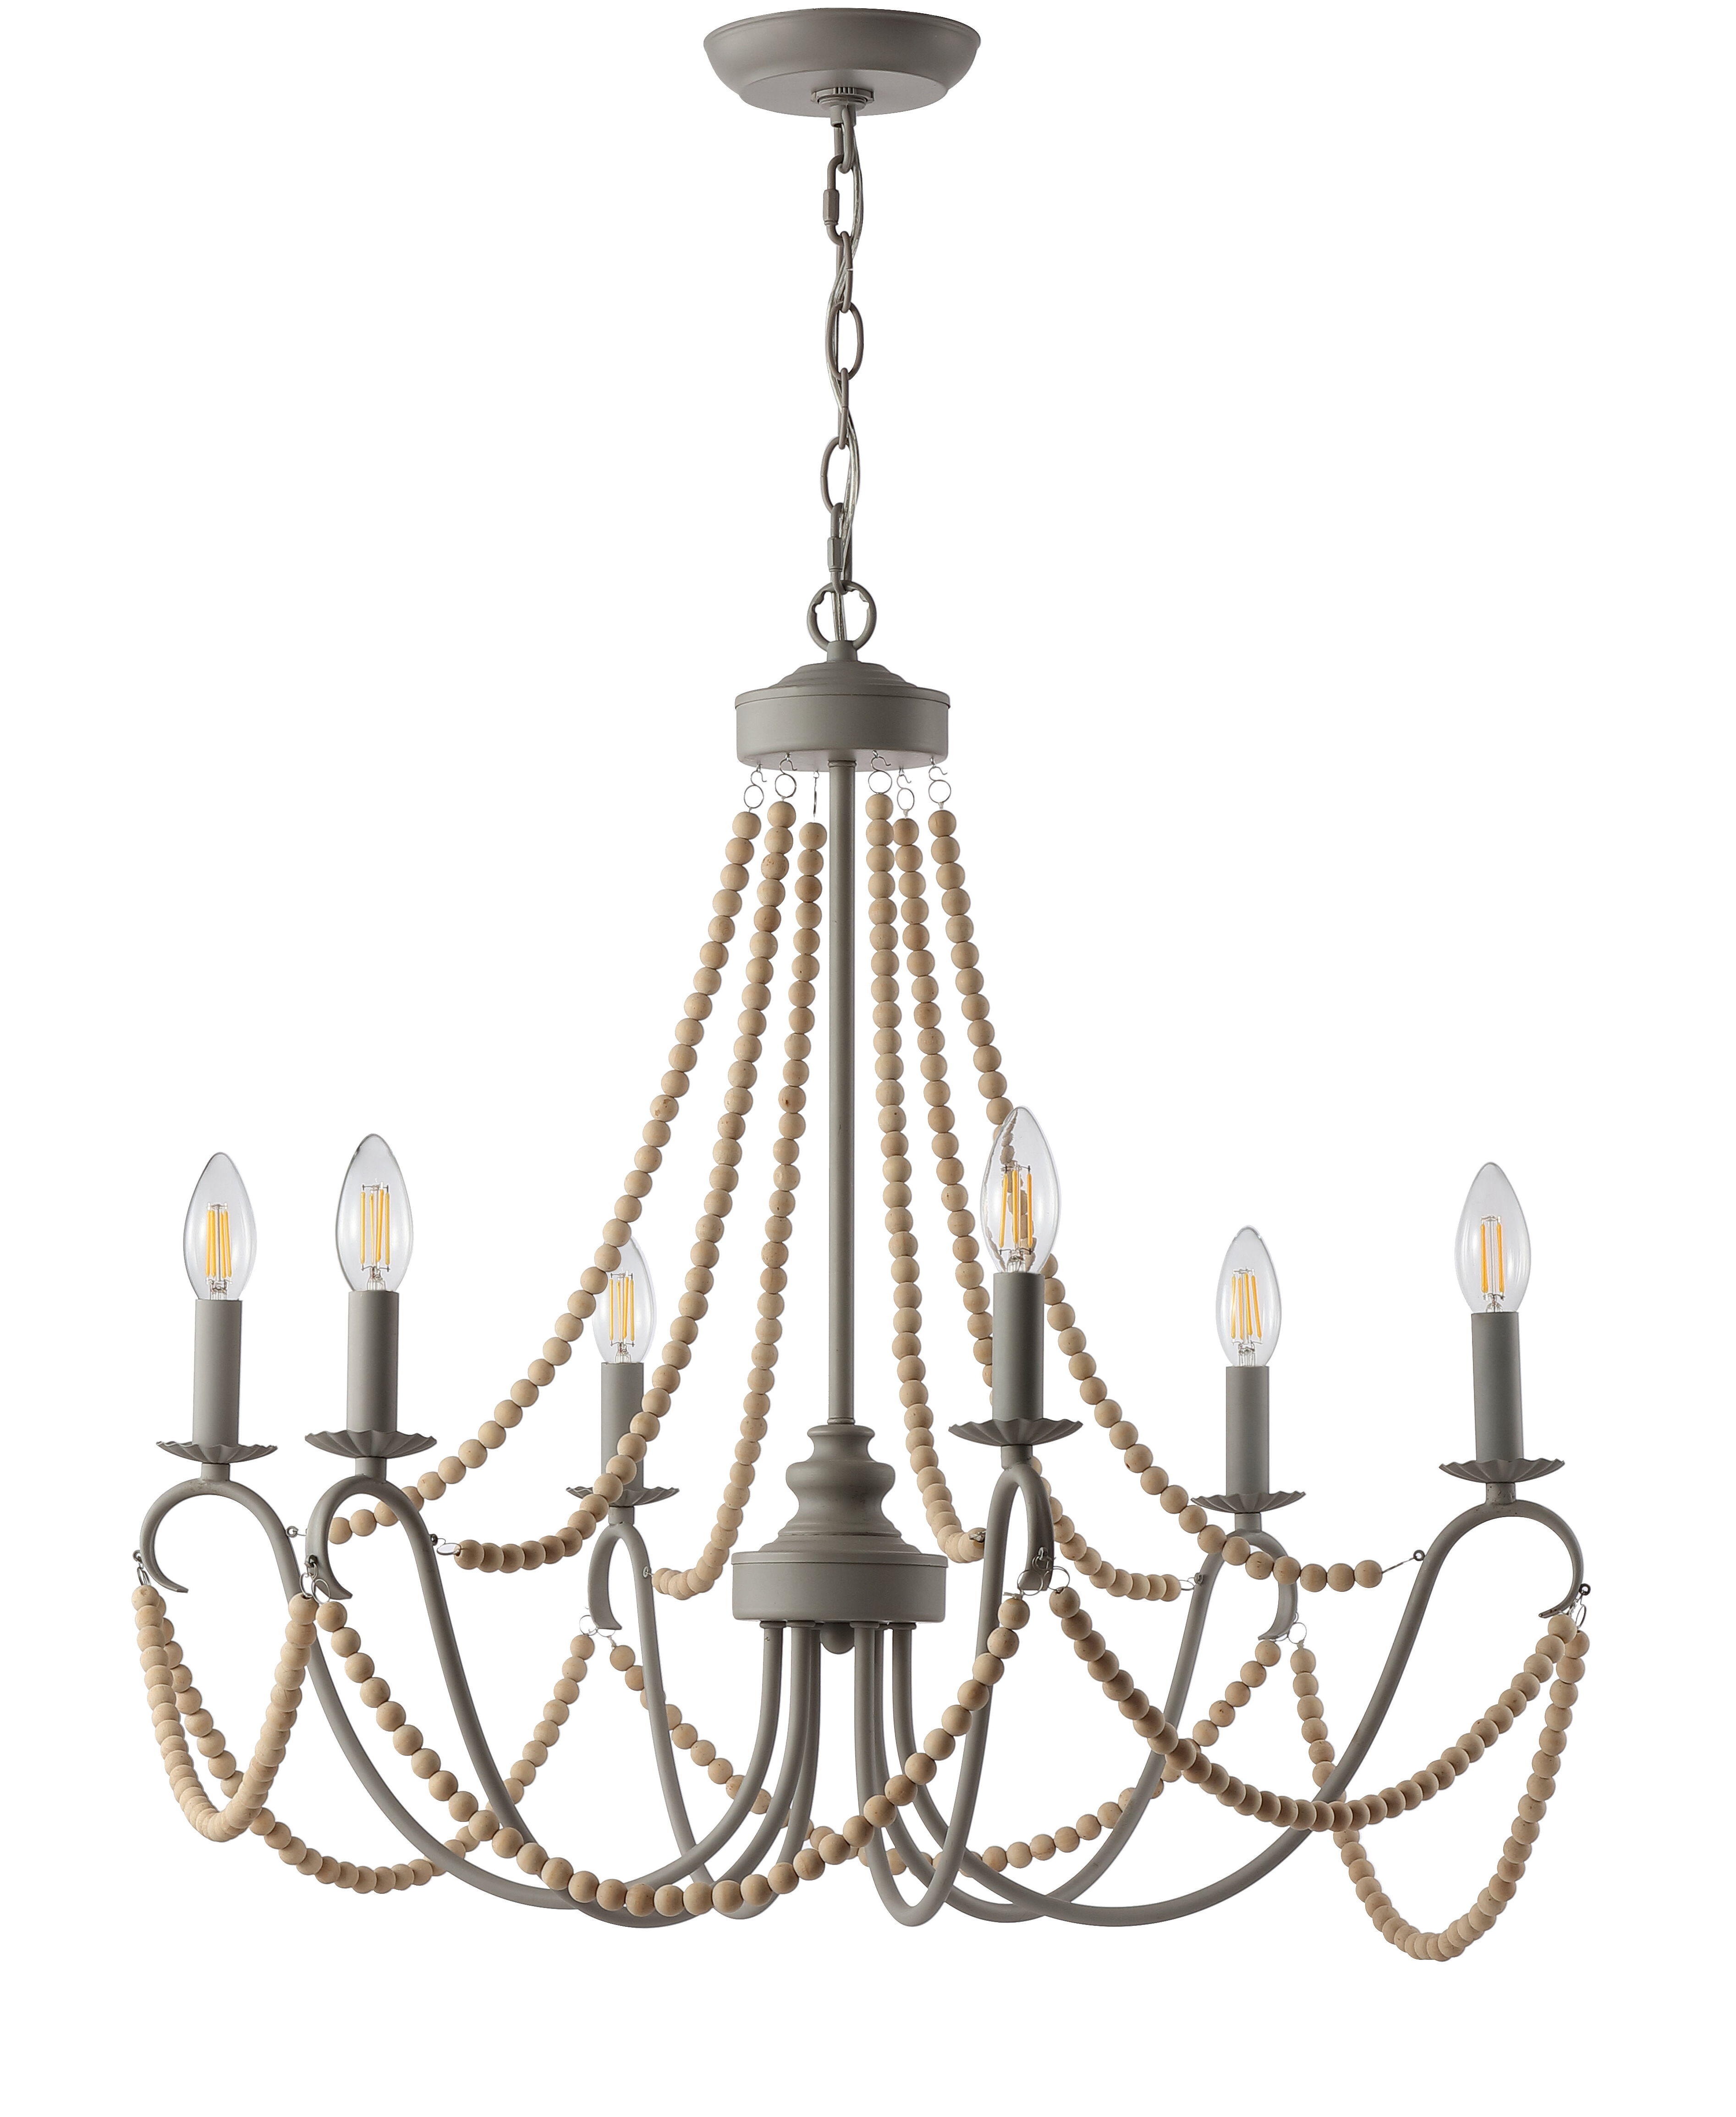 Favorite One Allium Way Carnes 6 Light Candle Style Chandelier Throughout Diaz 6 Light Candle Style Chandeliers (View 9 of 20)